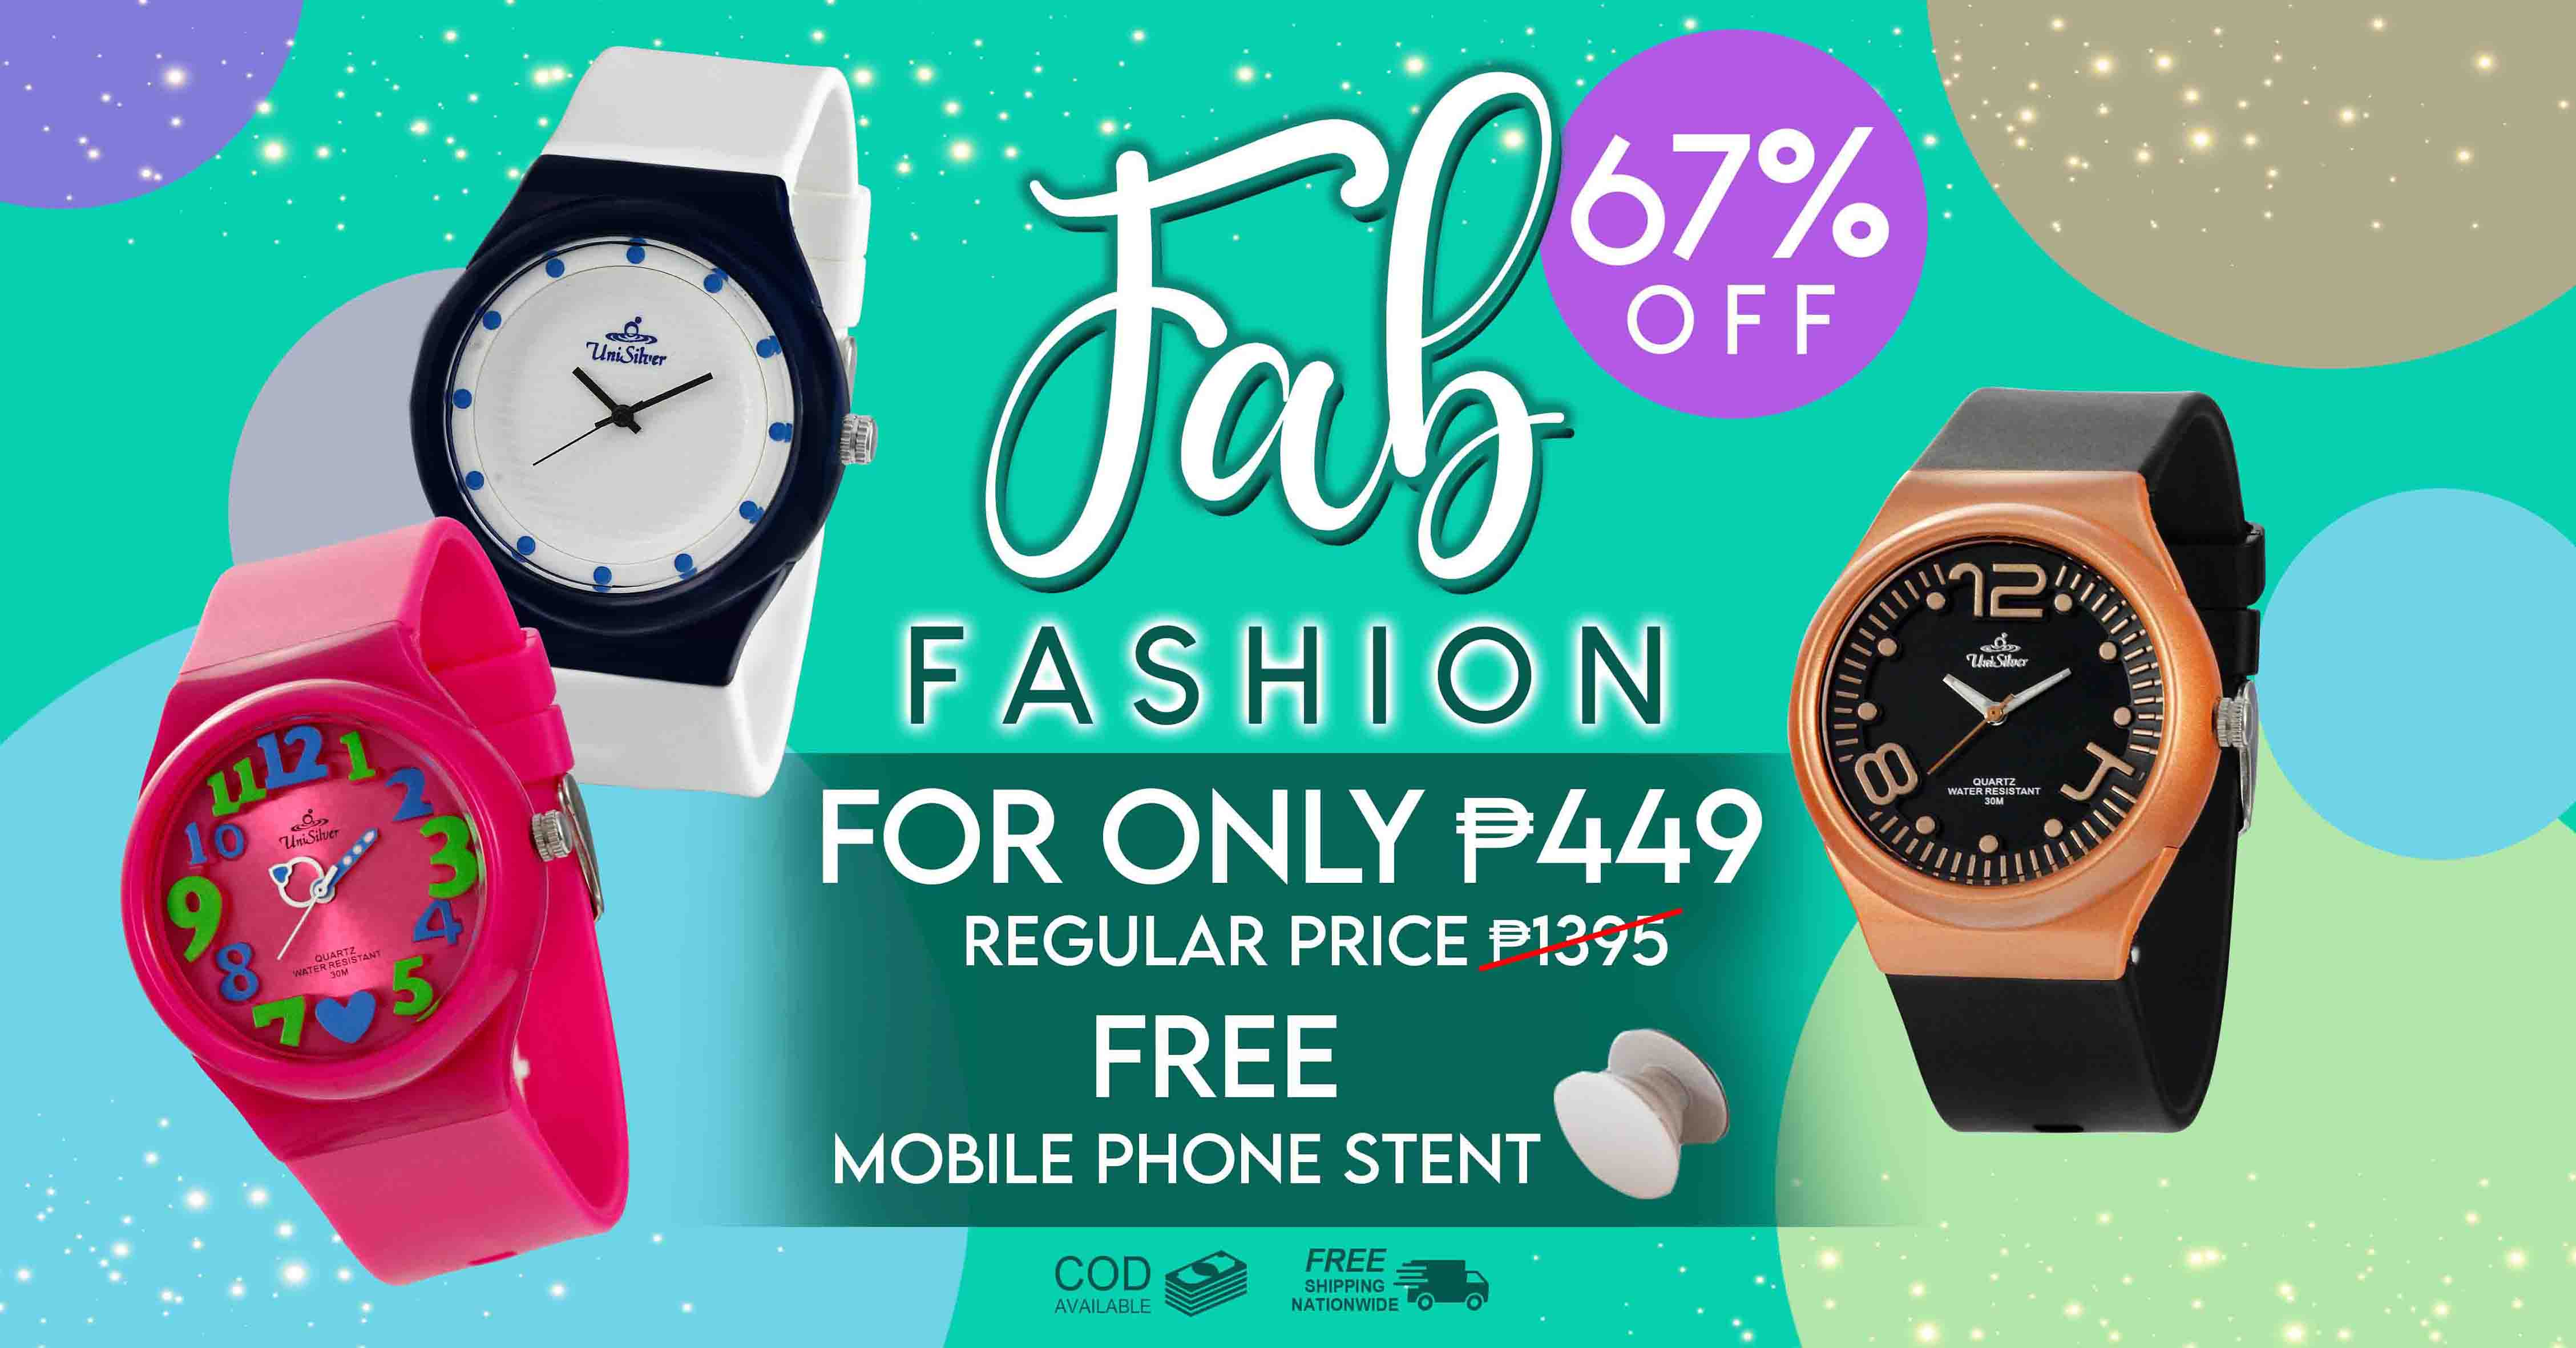 t's time to upgrade your style! Pick any 1 watch for ₱449. only plus free mobile phone stent. Hurry and order now as this promo is only available online http://www.unisilvertime.com/.  Free shipping nationwide and COD option is available. Shop now here >>> https://bit.ly/2ZiWFlN